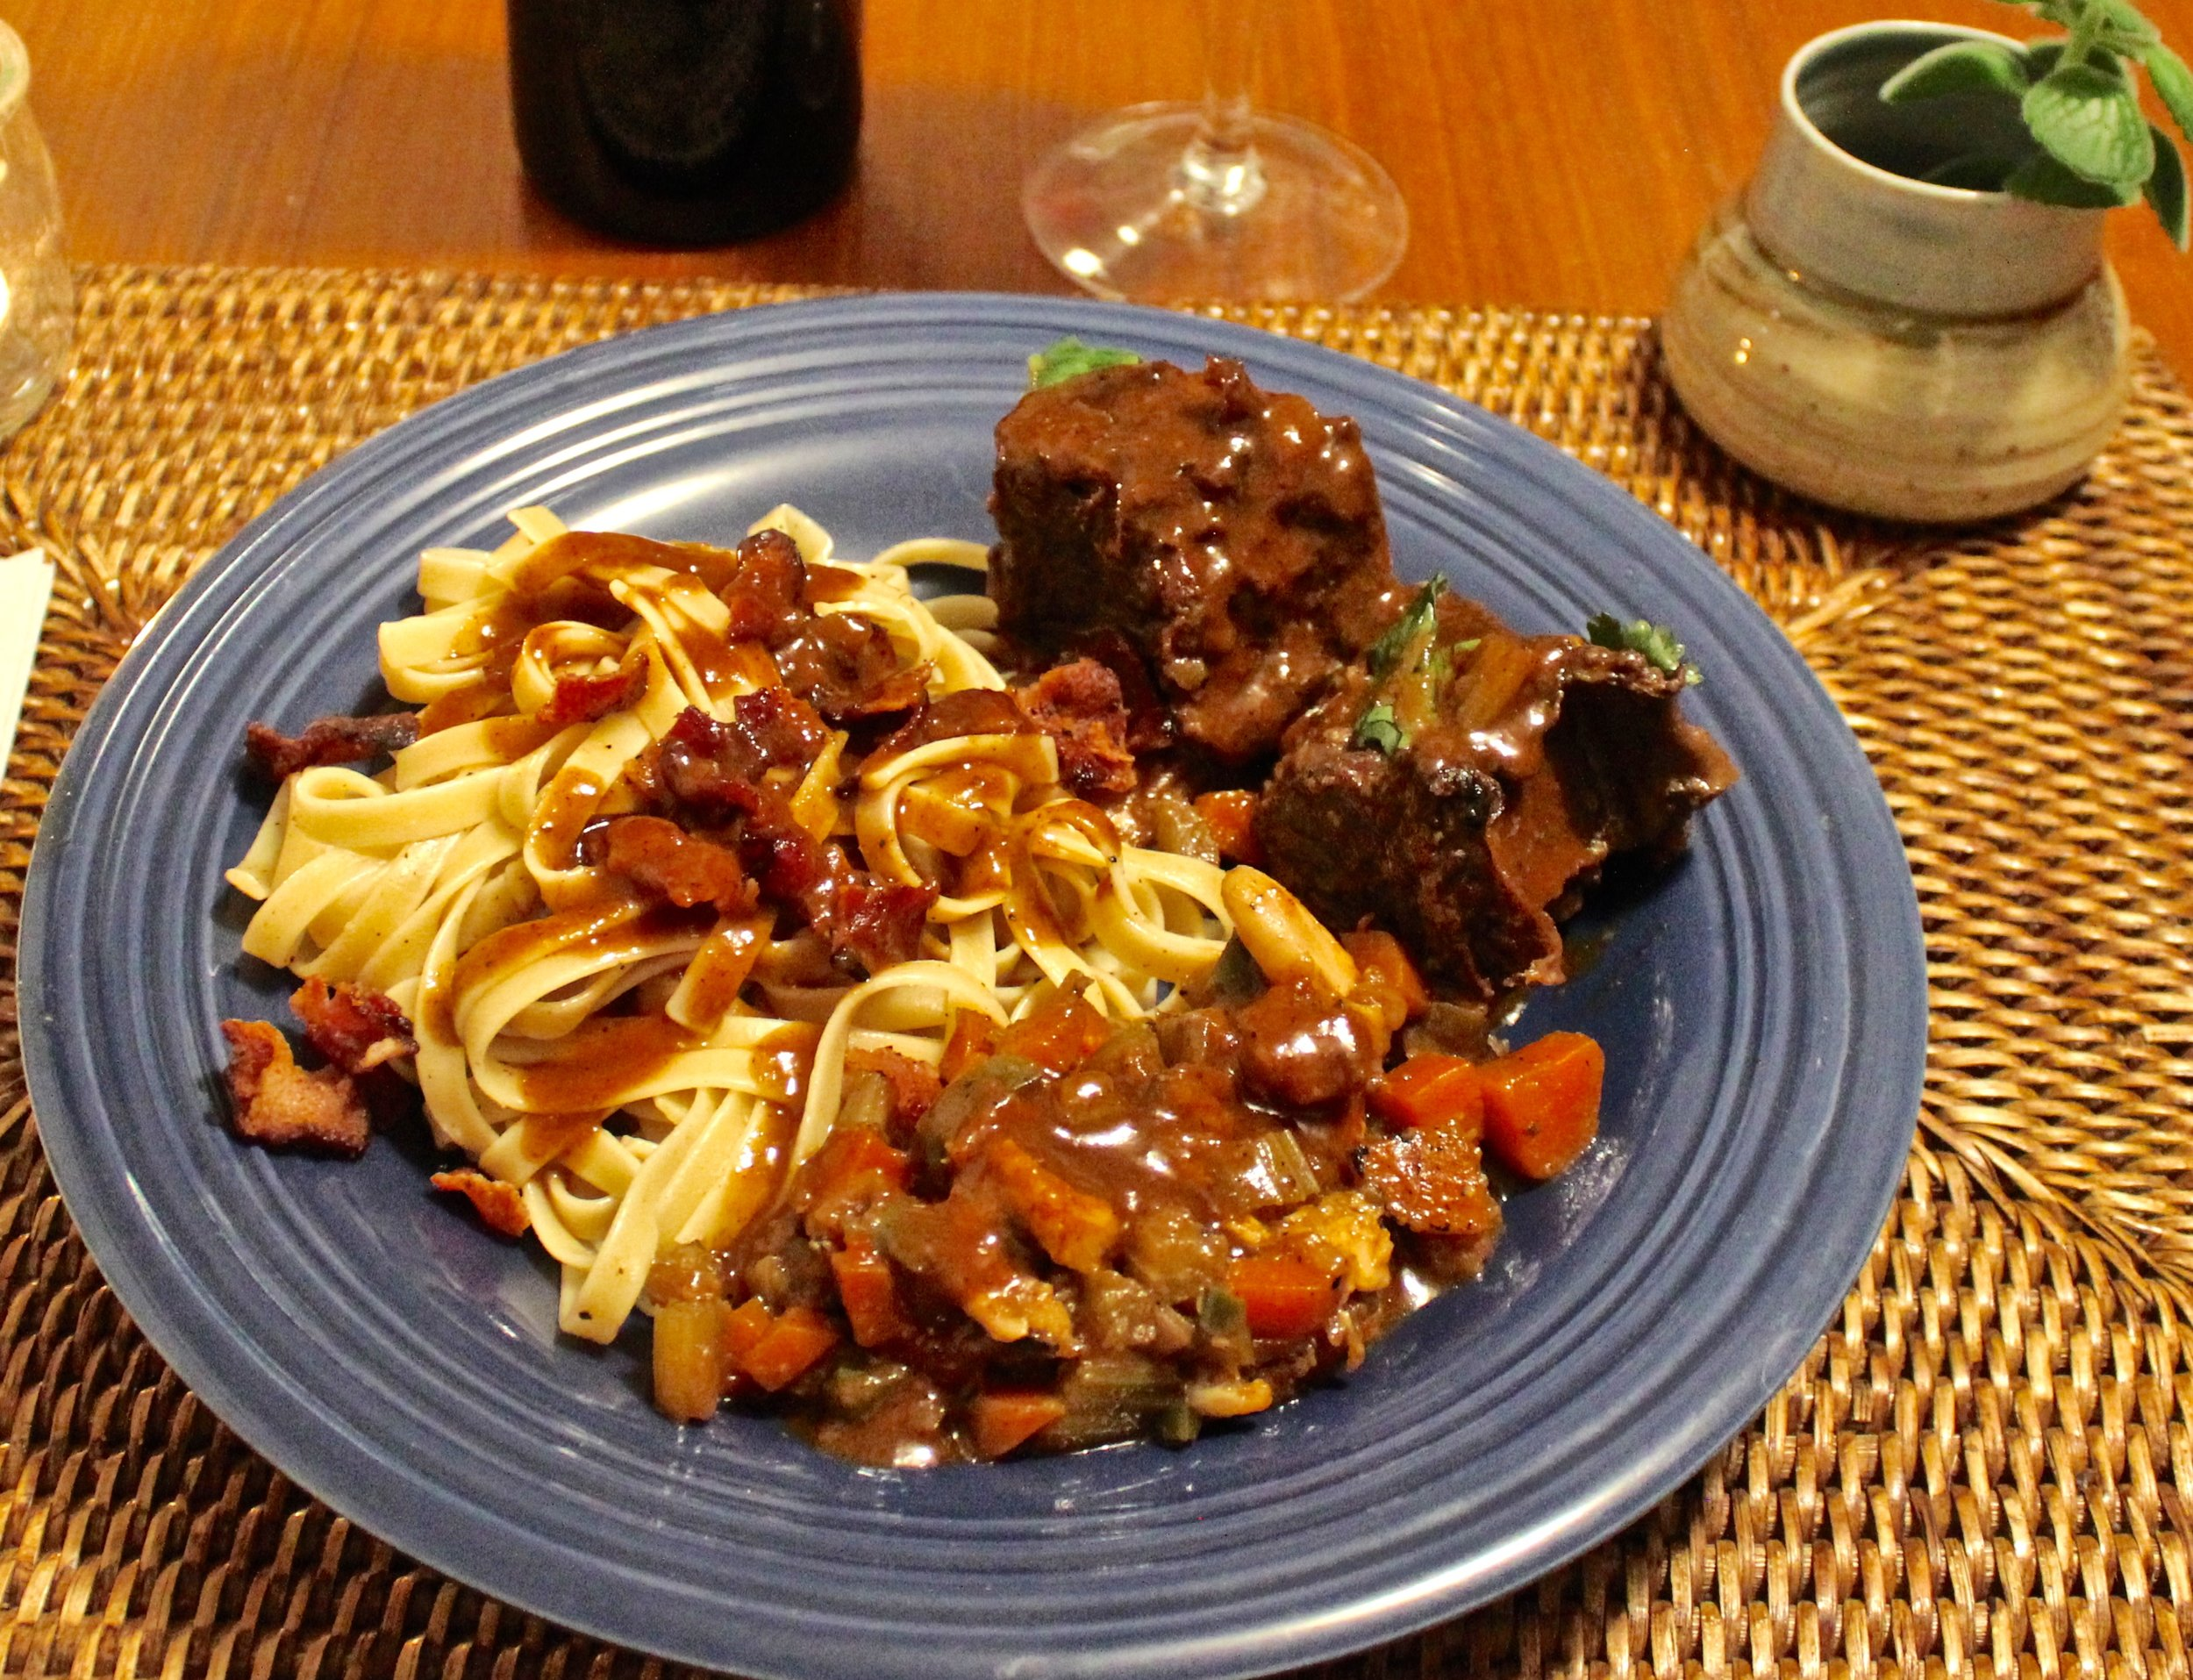 Braised short ribs, vegetables, and noodles .jpg